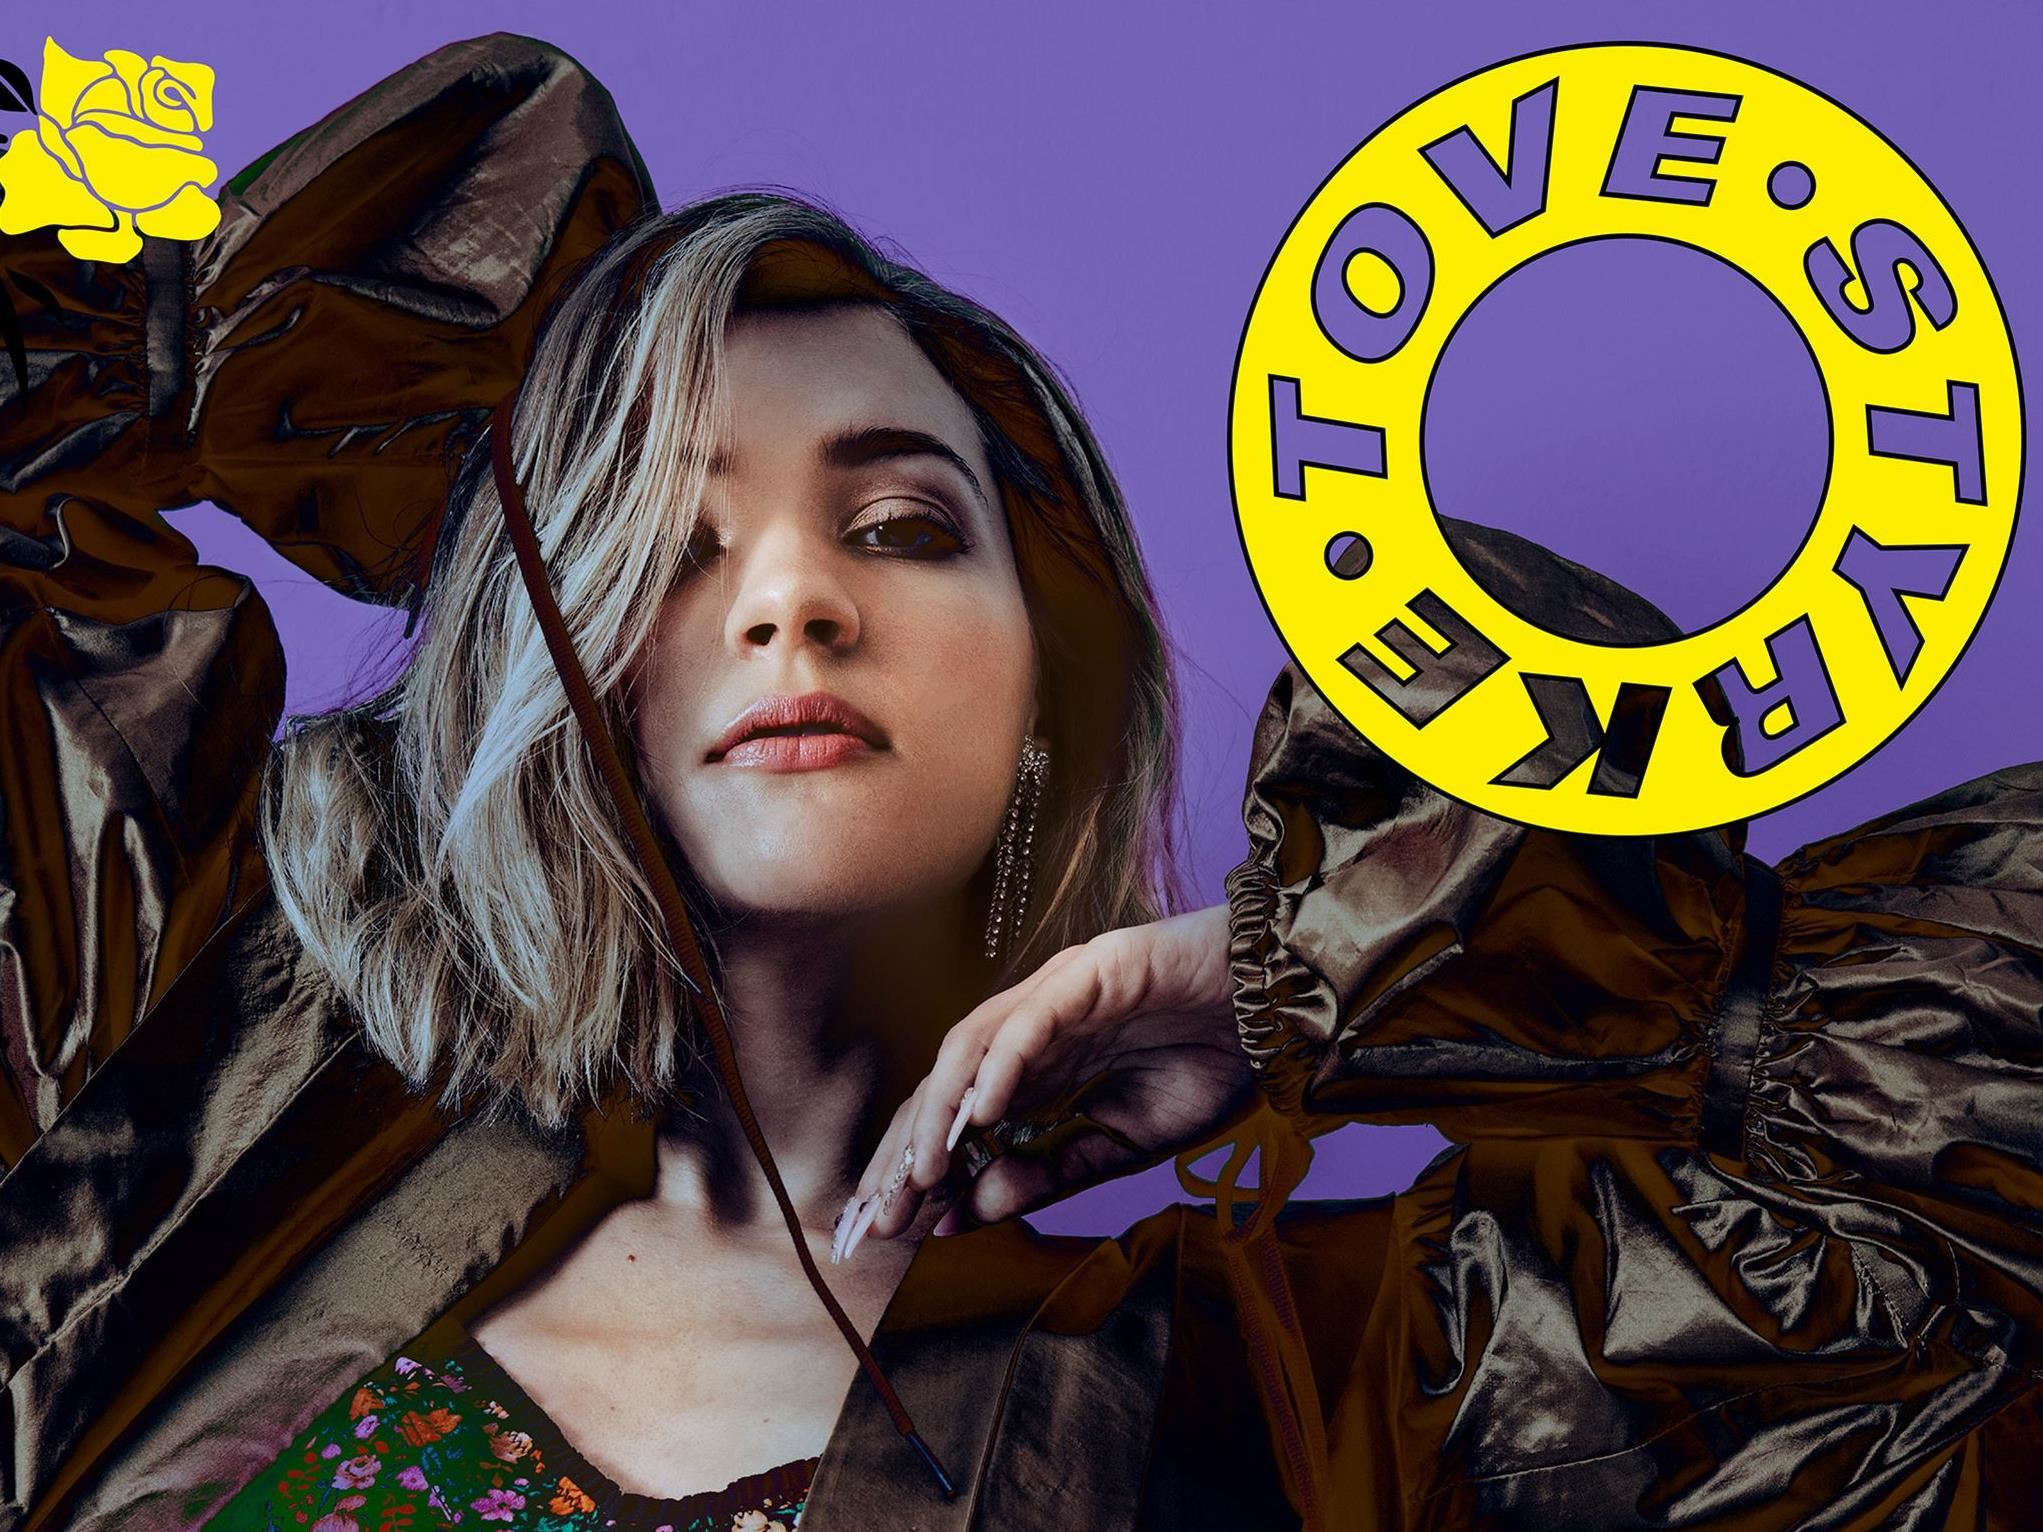 © Sony Music, Tove Styrke - Sway tour